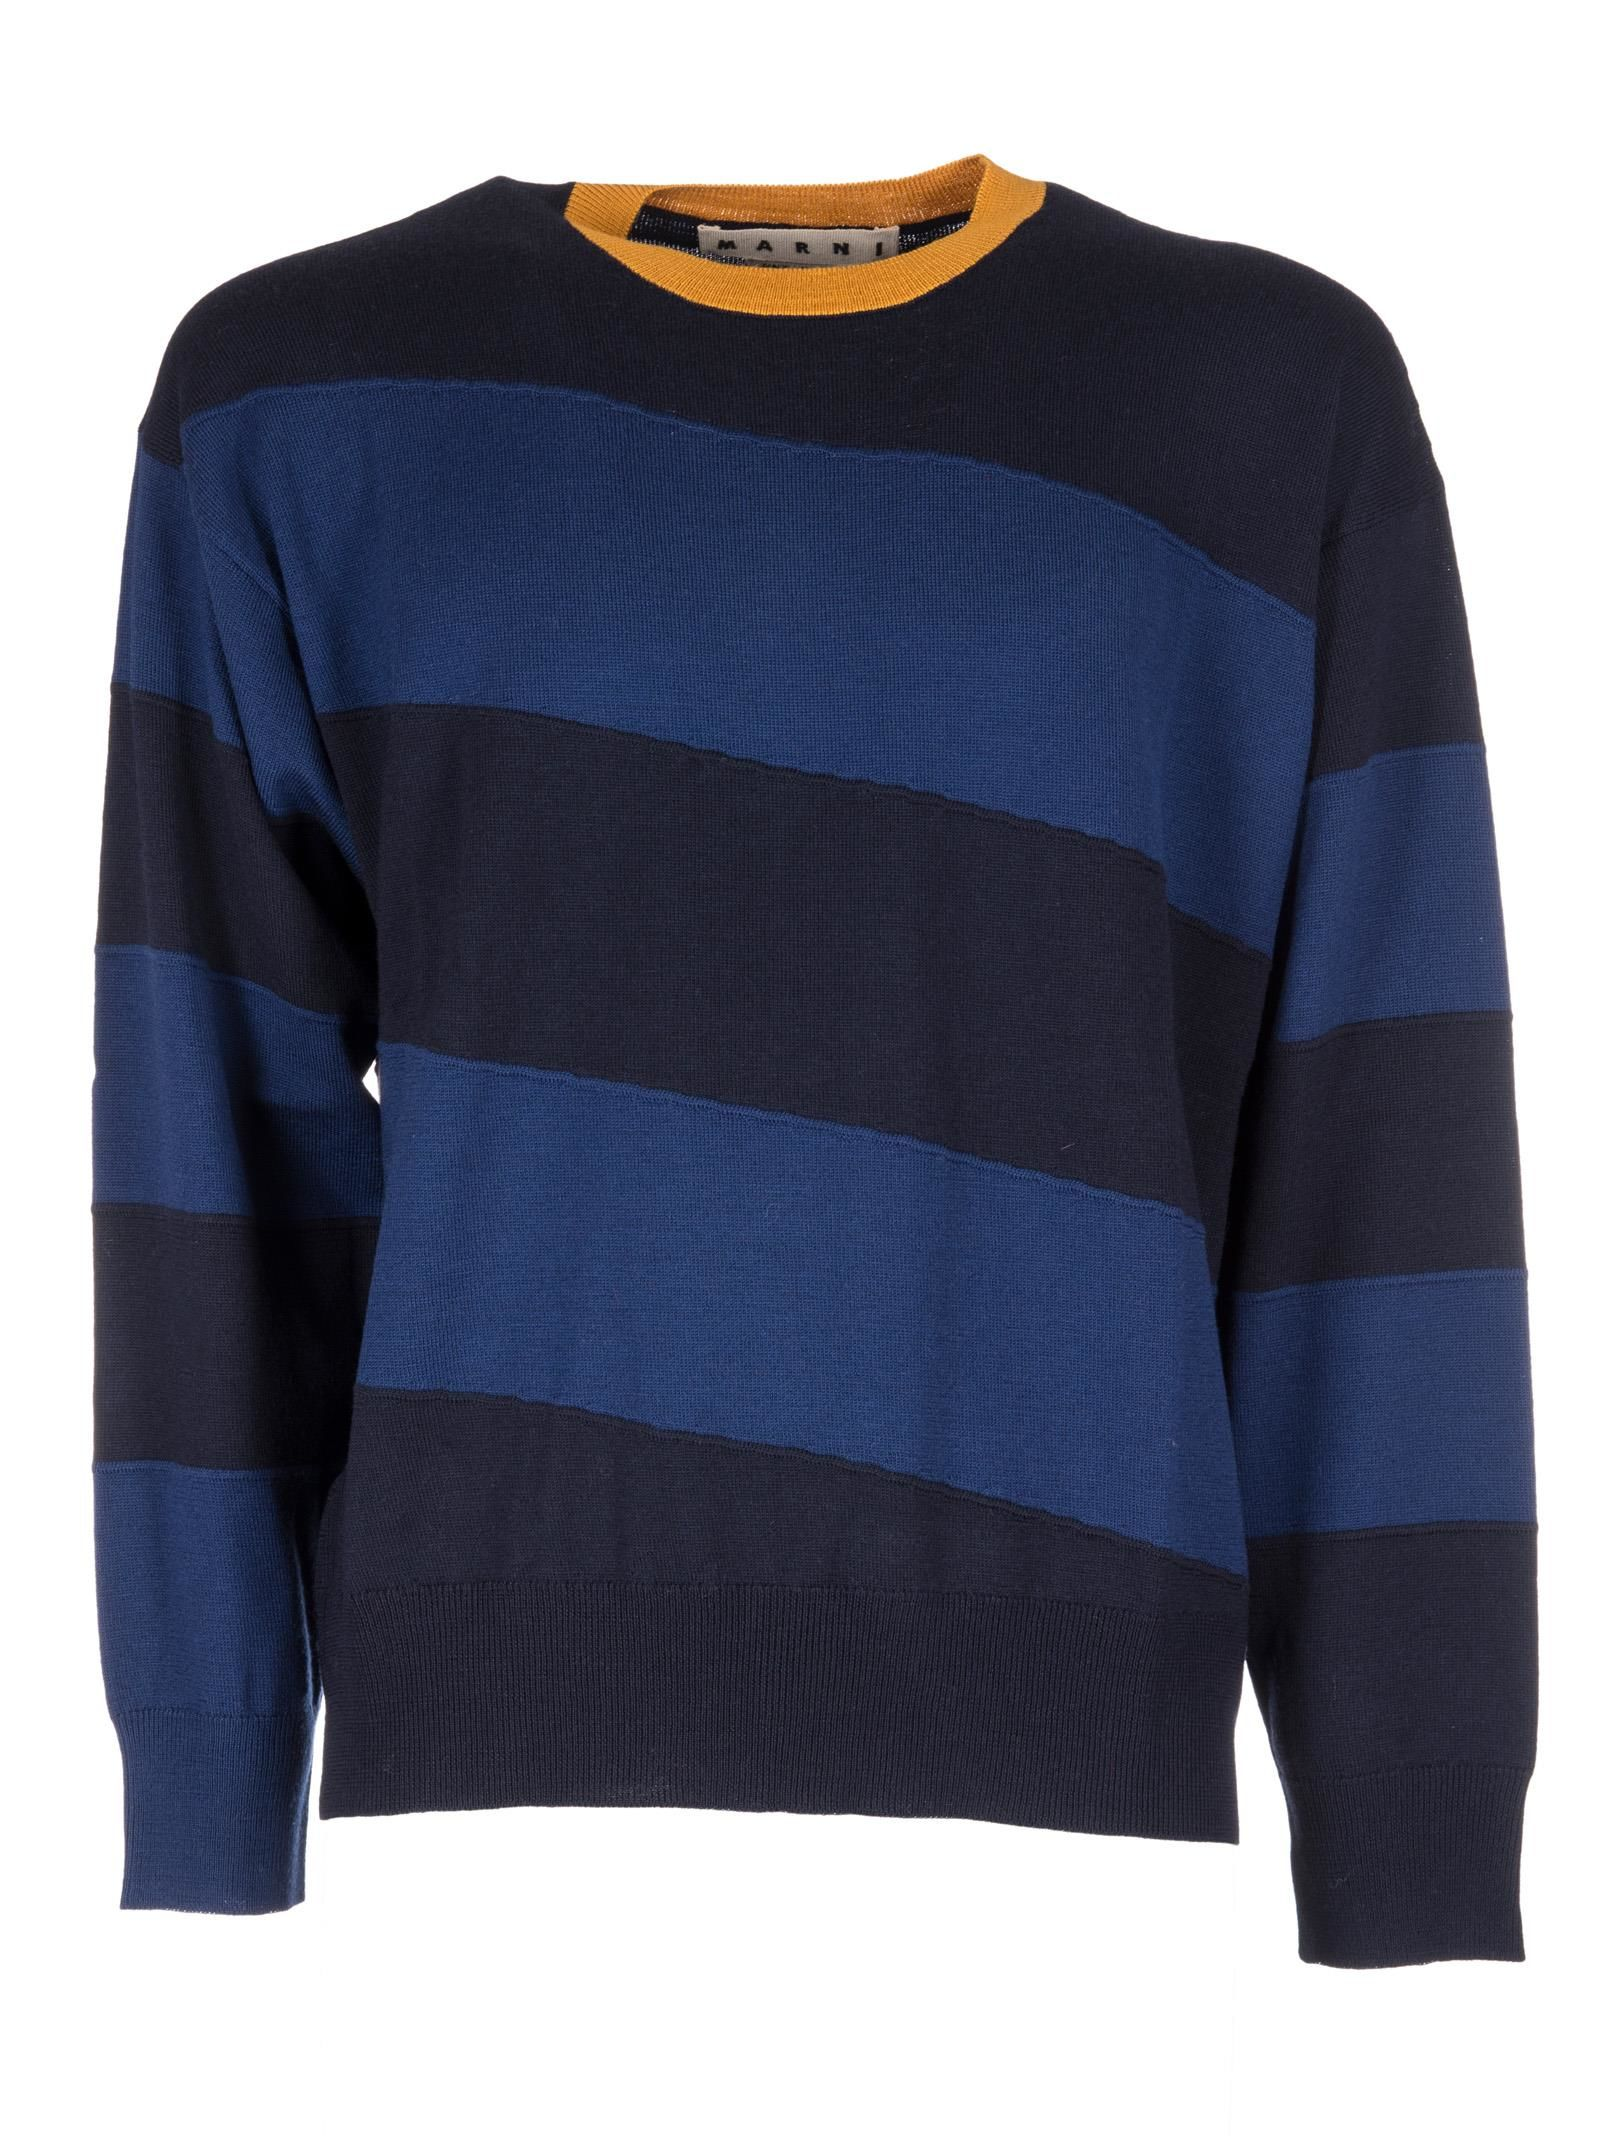 Marni - Marni Striped Sweater - Navy blue yellow, Men's Sweaters ...